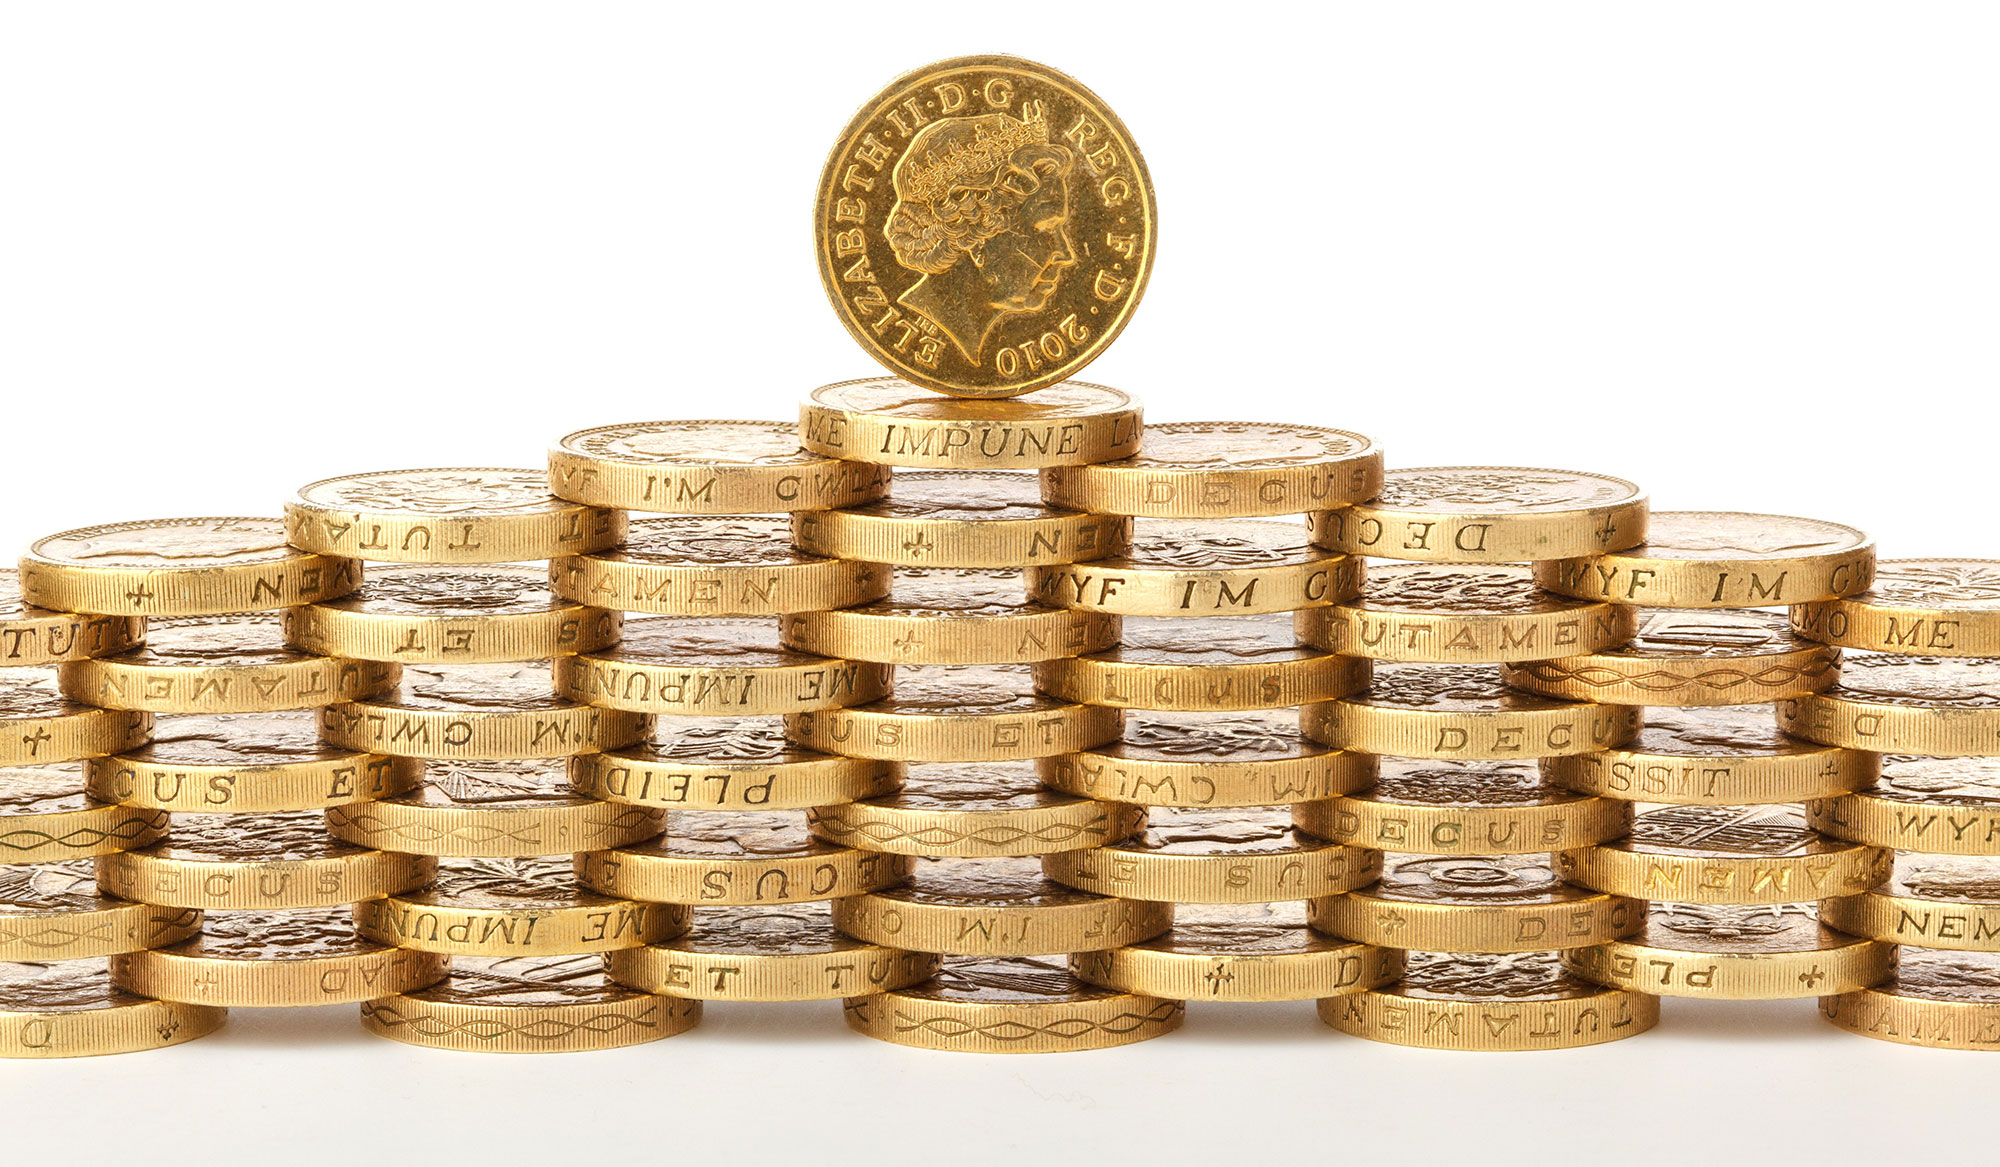 Imaeg of Sterling pound coins to indicate taking fund management seriously